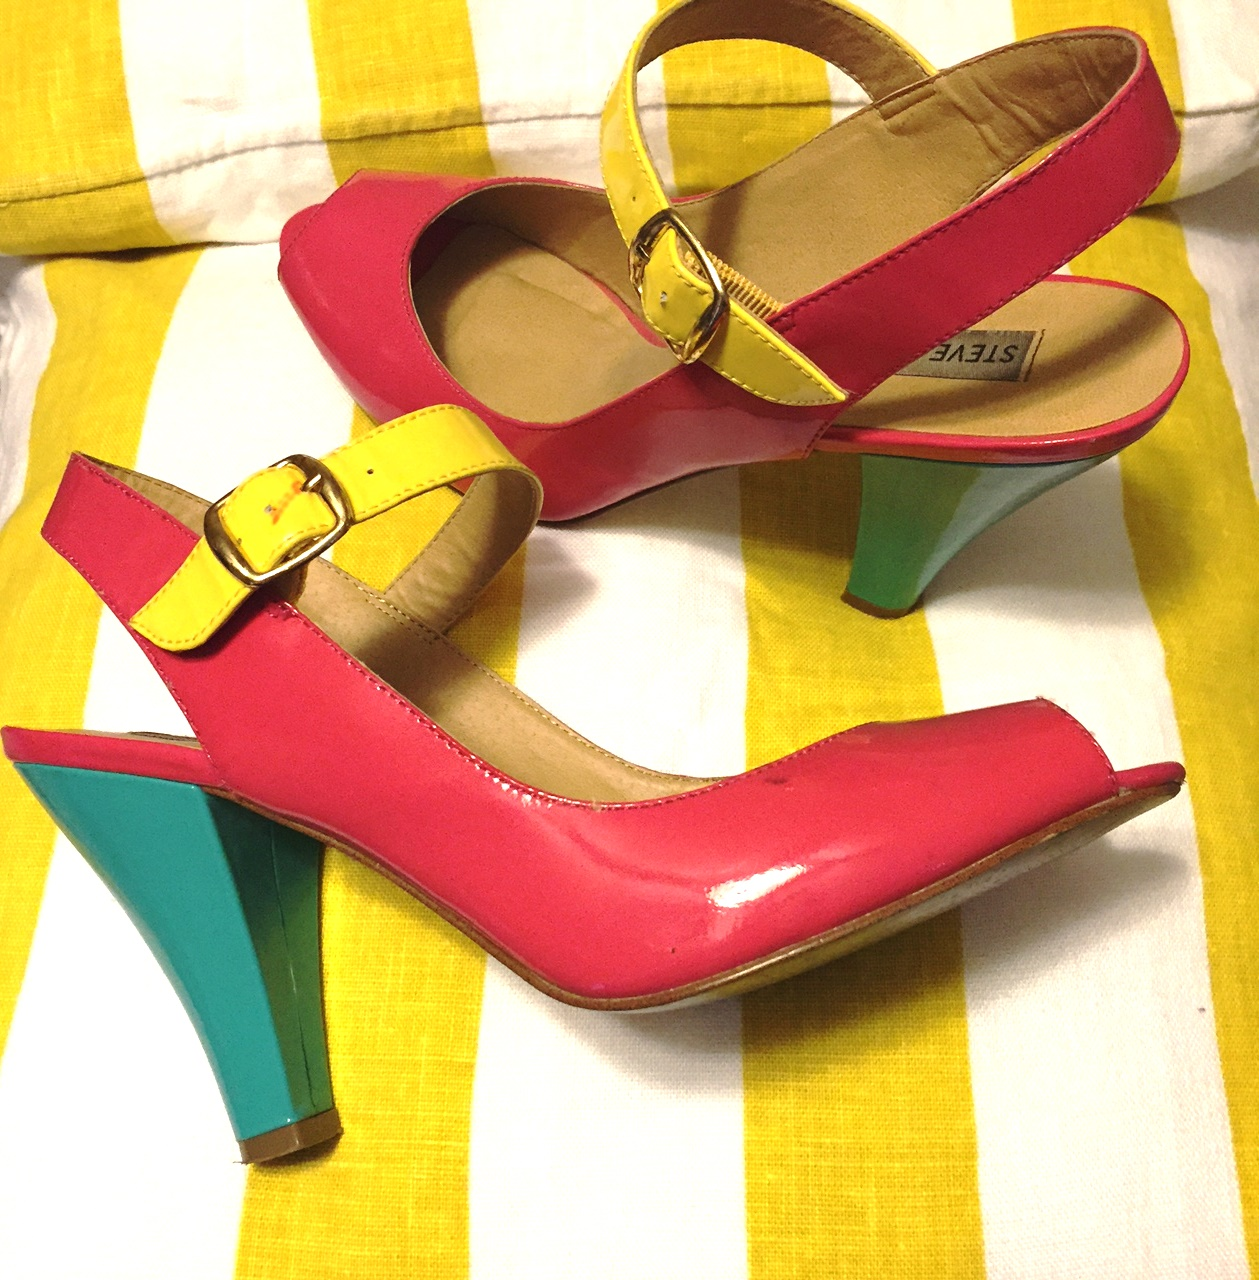 Color block heels always find their way back around.